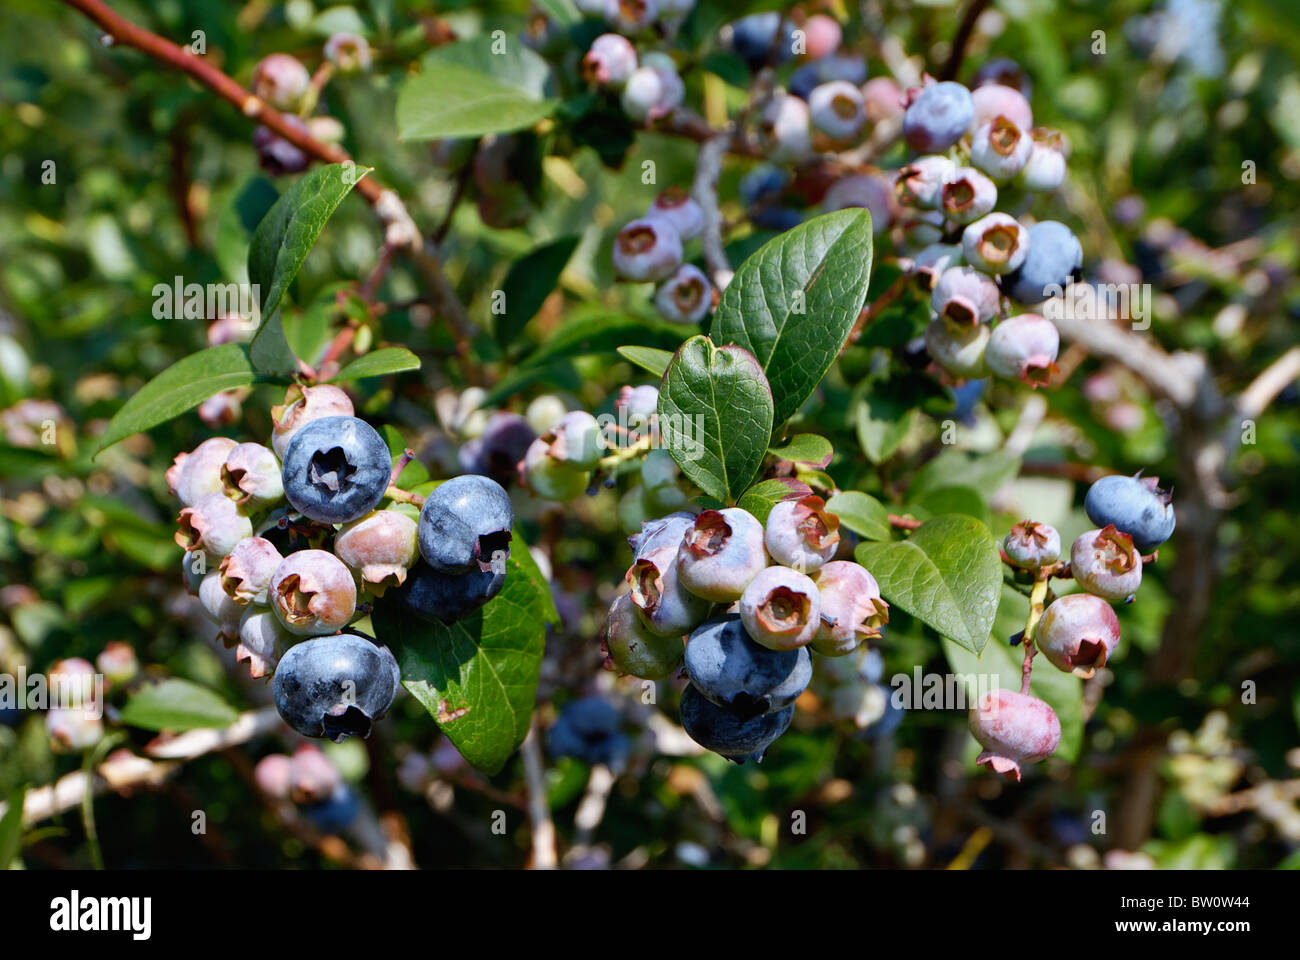 Blueberries Growing on the Bush in Harrison County, Indiana - Stock Image